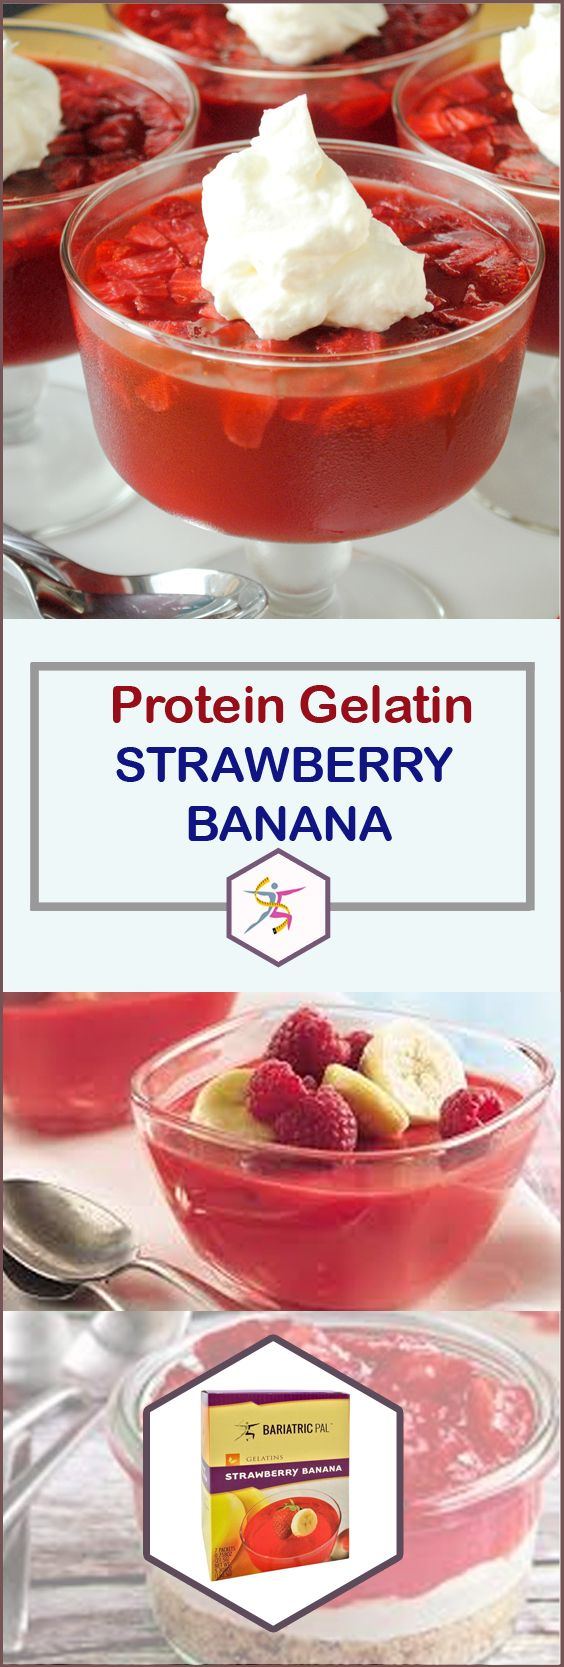 BariatricPal Protein Gelatin Strawberry Banana has a familiar and sweet taste, but none of the sugar. You may want to stock up for your pre-op or post-op liquid diet, or for those days when you need an easy, guilt-free treat.